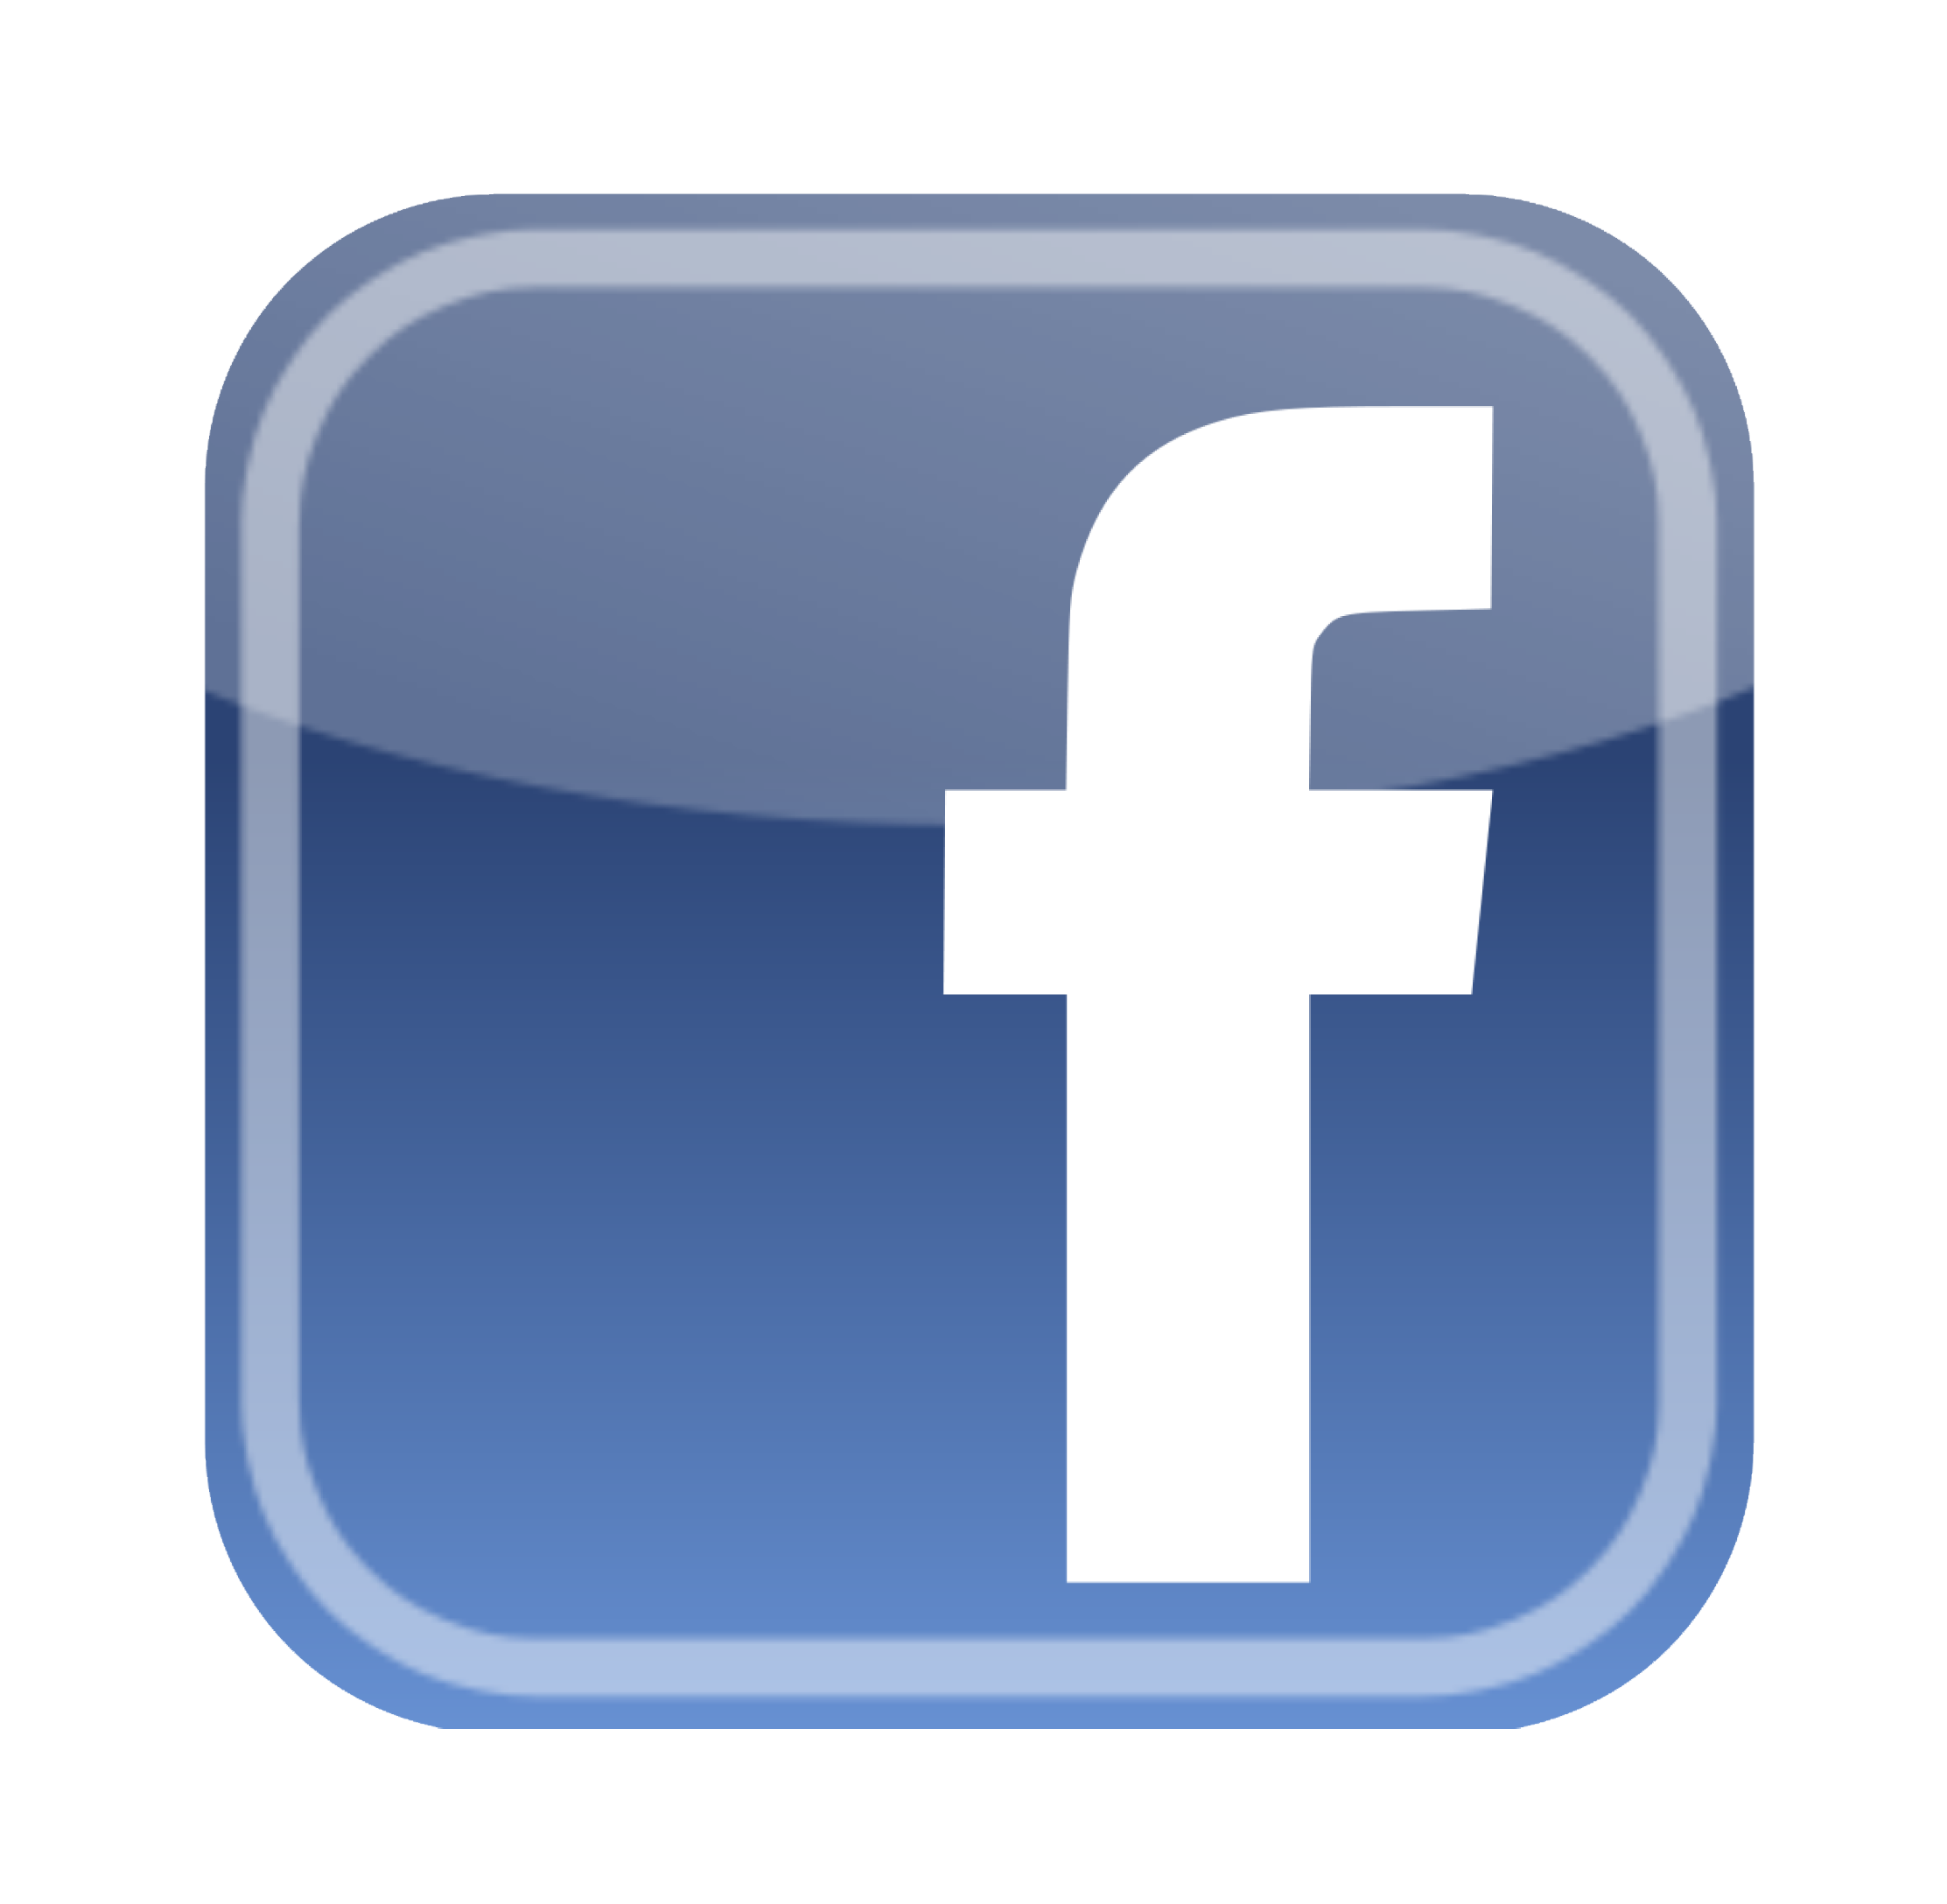 logo facebook hd